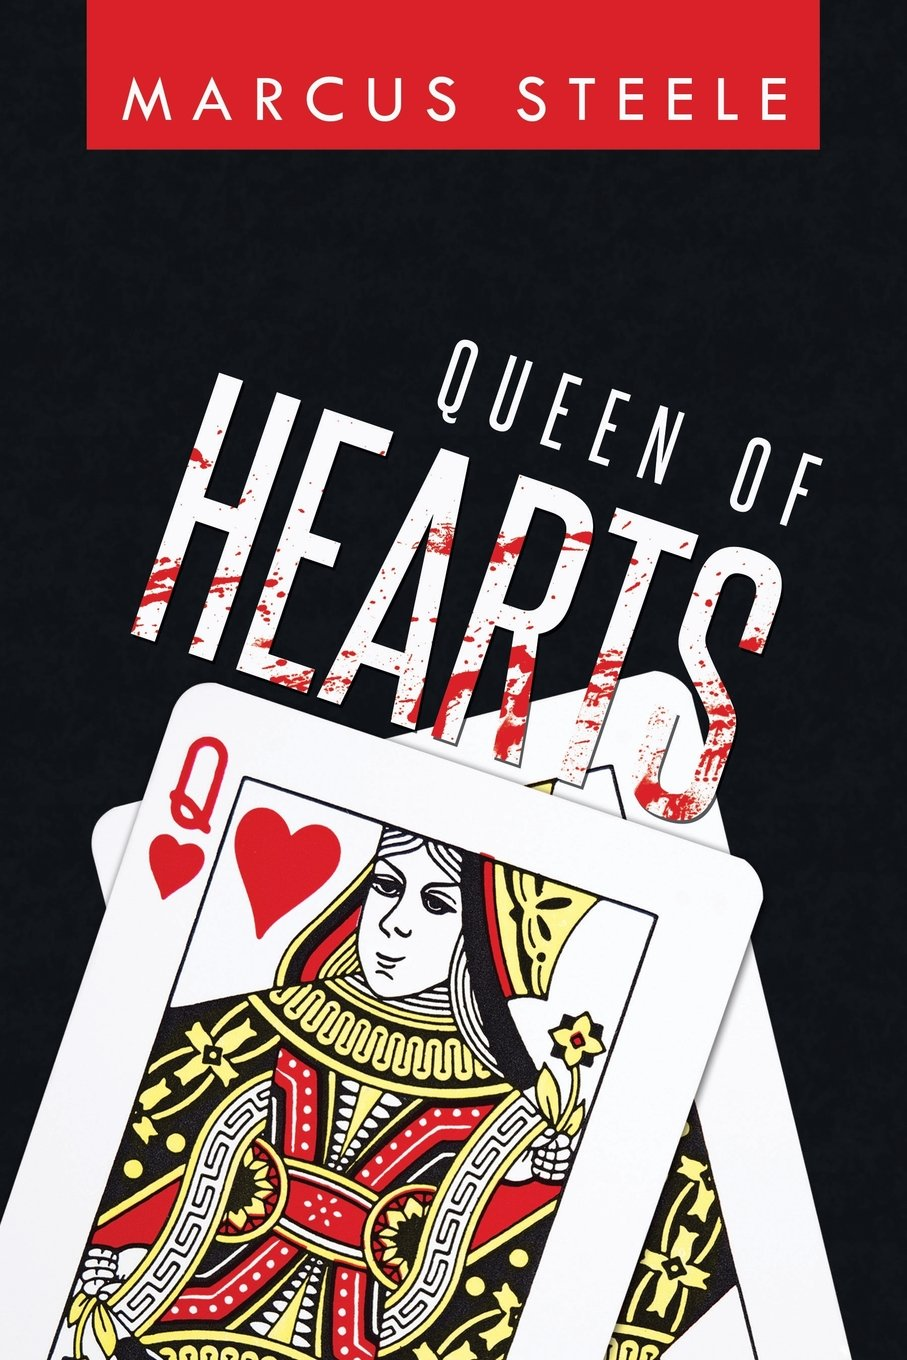 Queen of Hearts by Marcus Steele